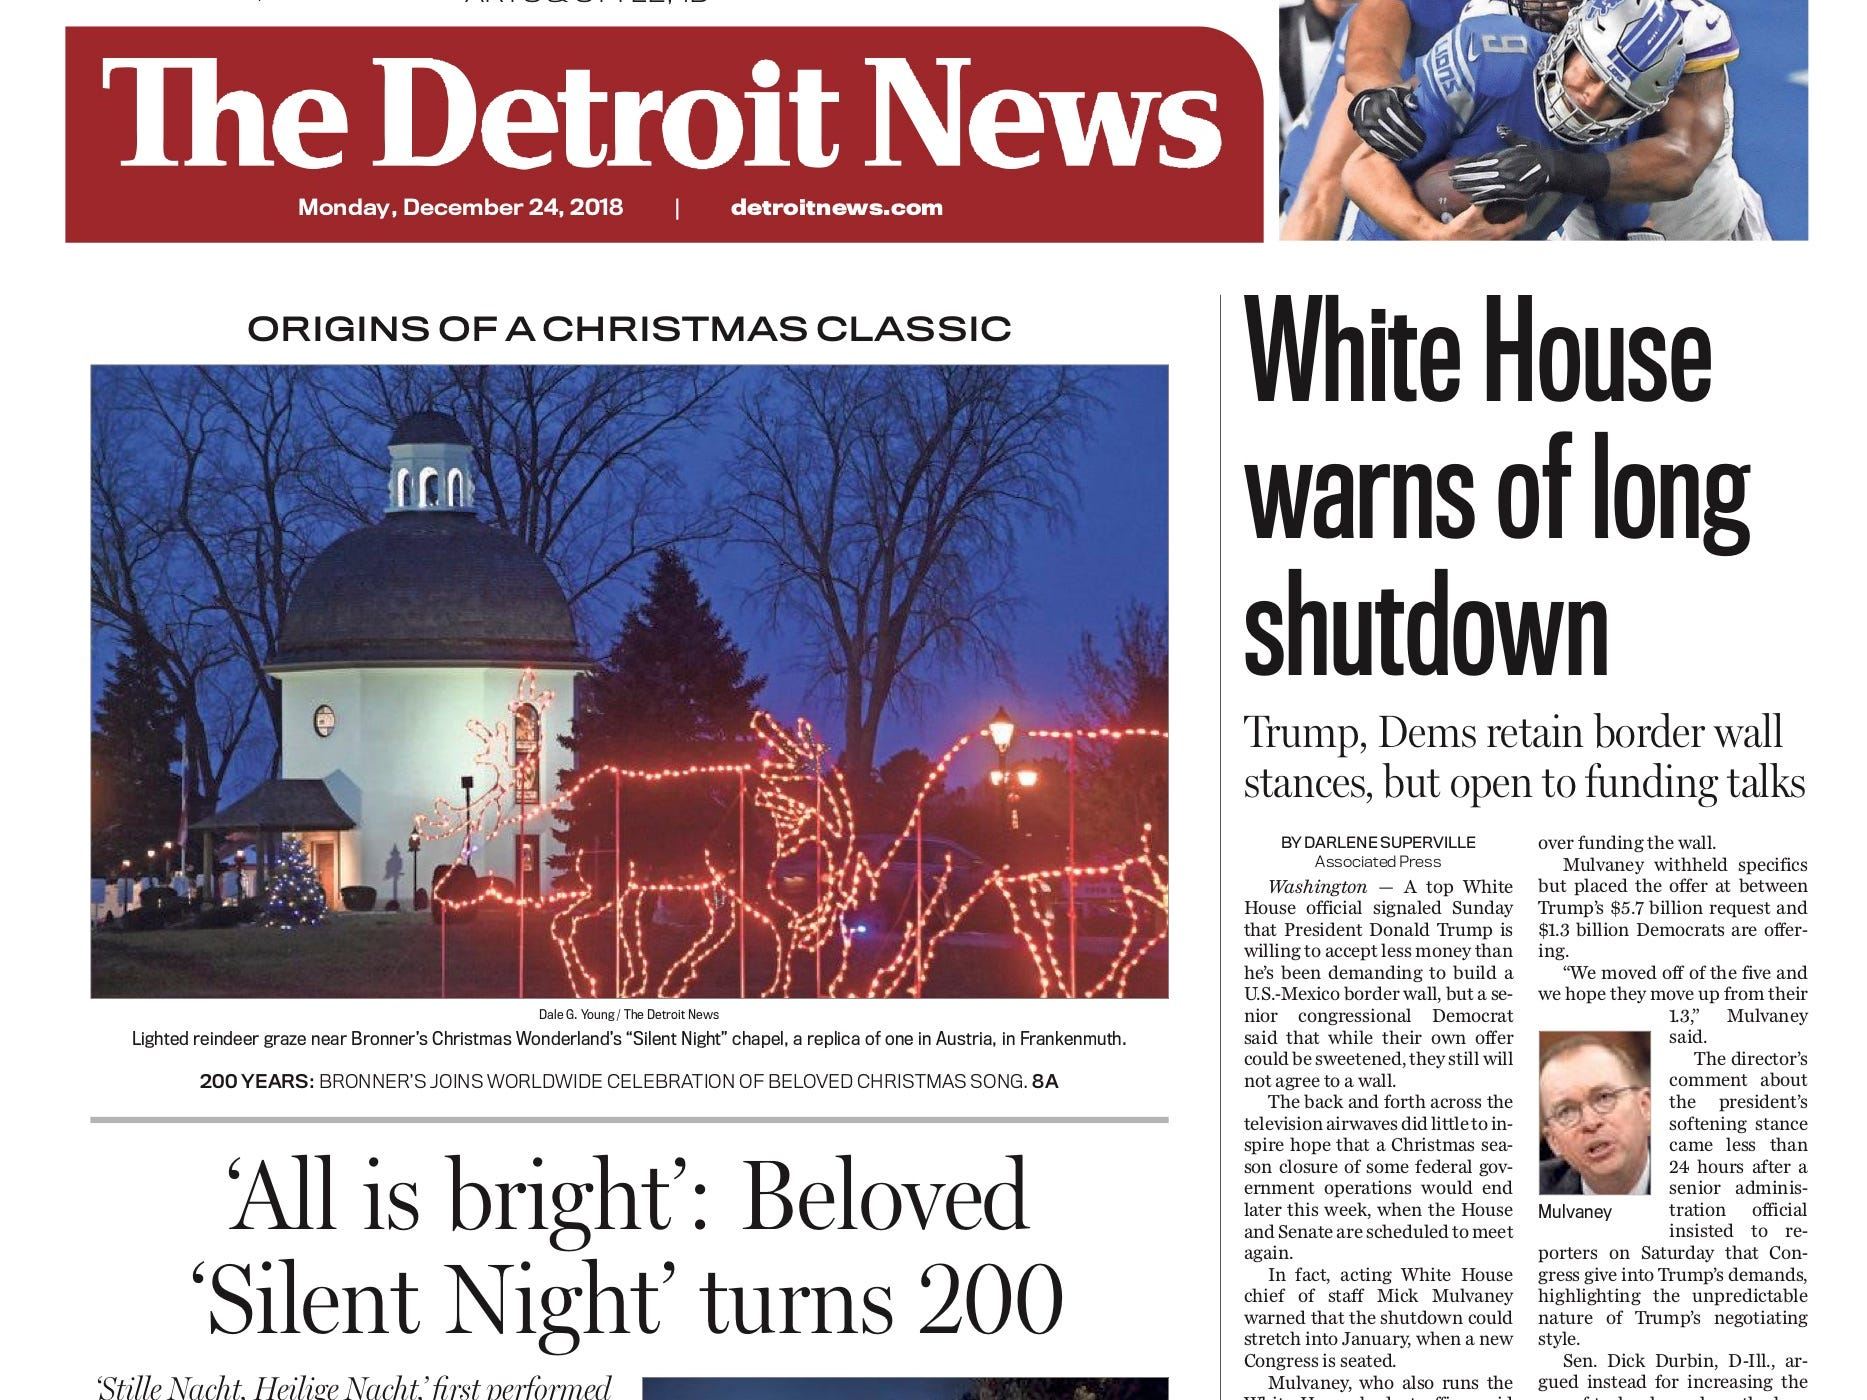 The front page of the Detroit News on December 24, 2018.